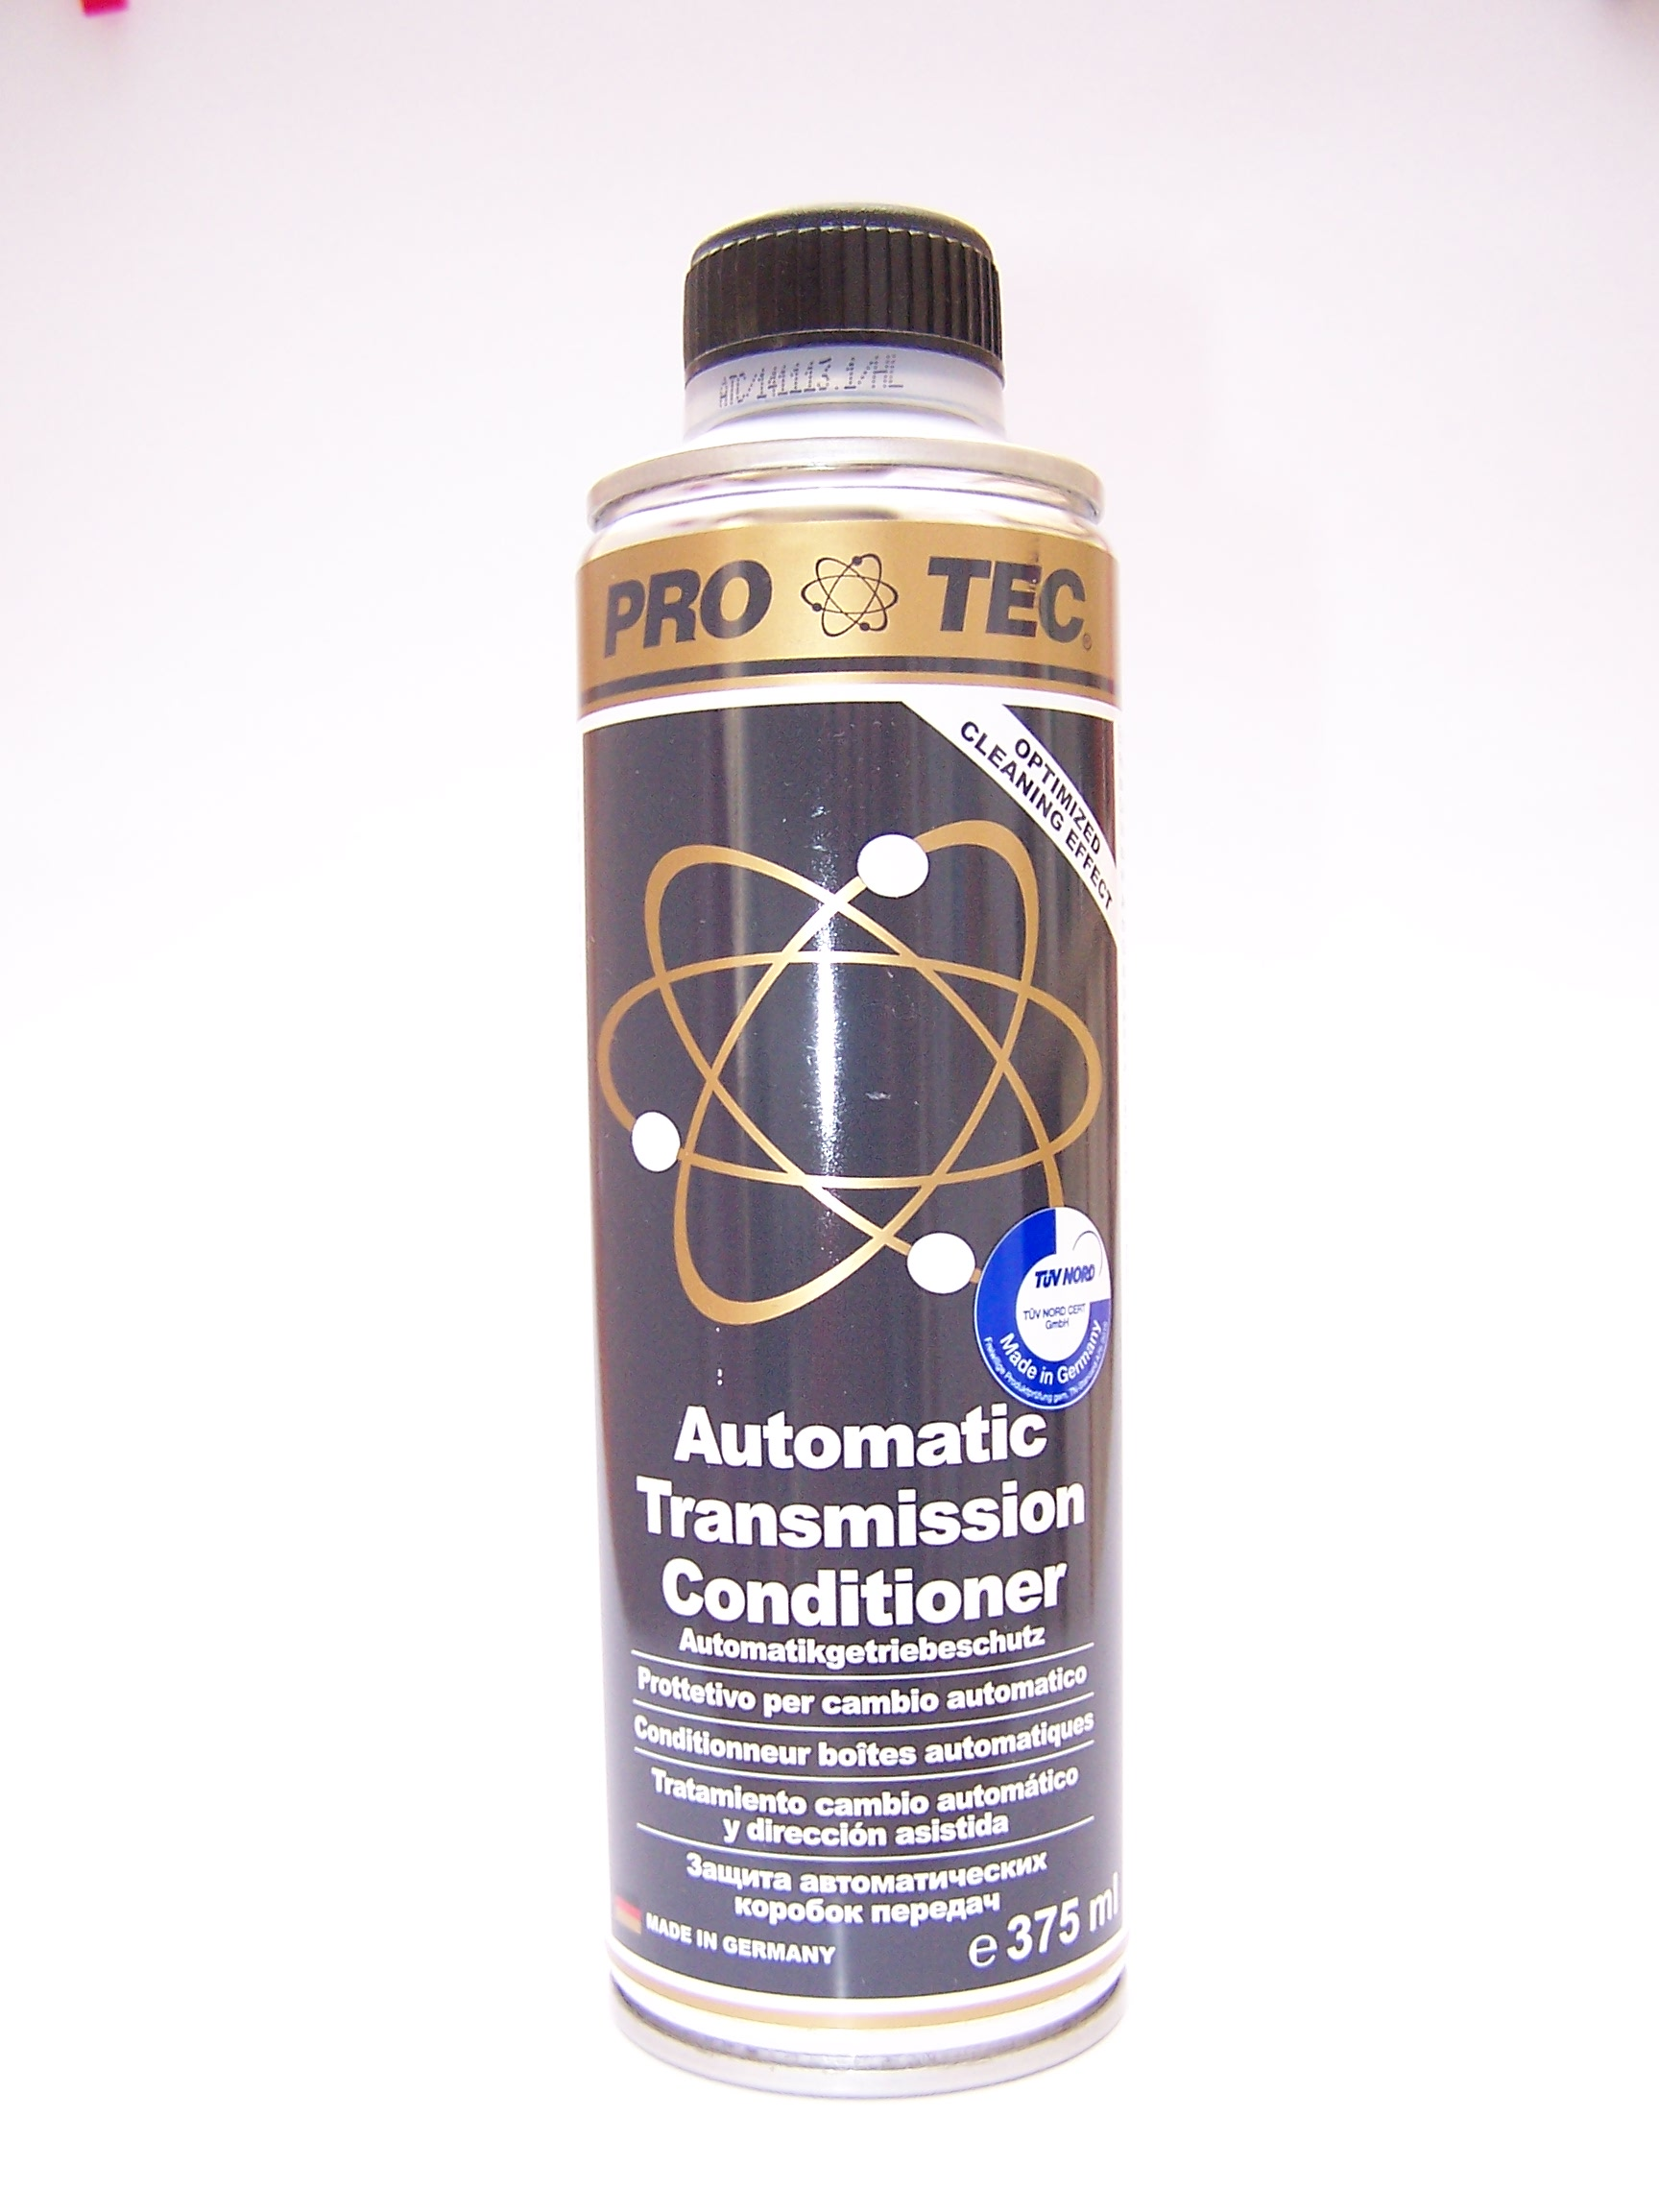 PRO-TEC Automatic transmission conditioner